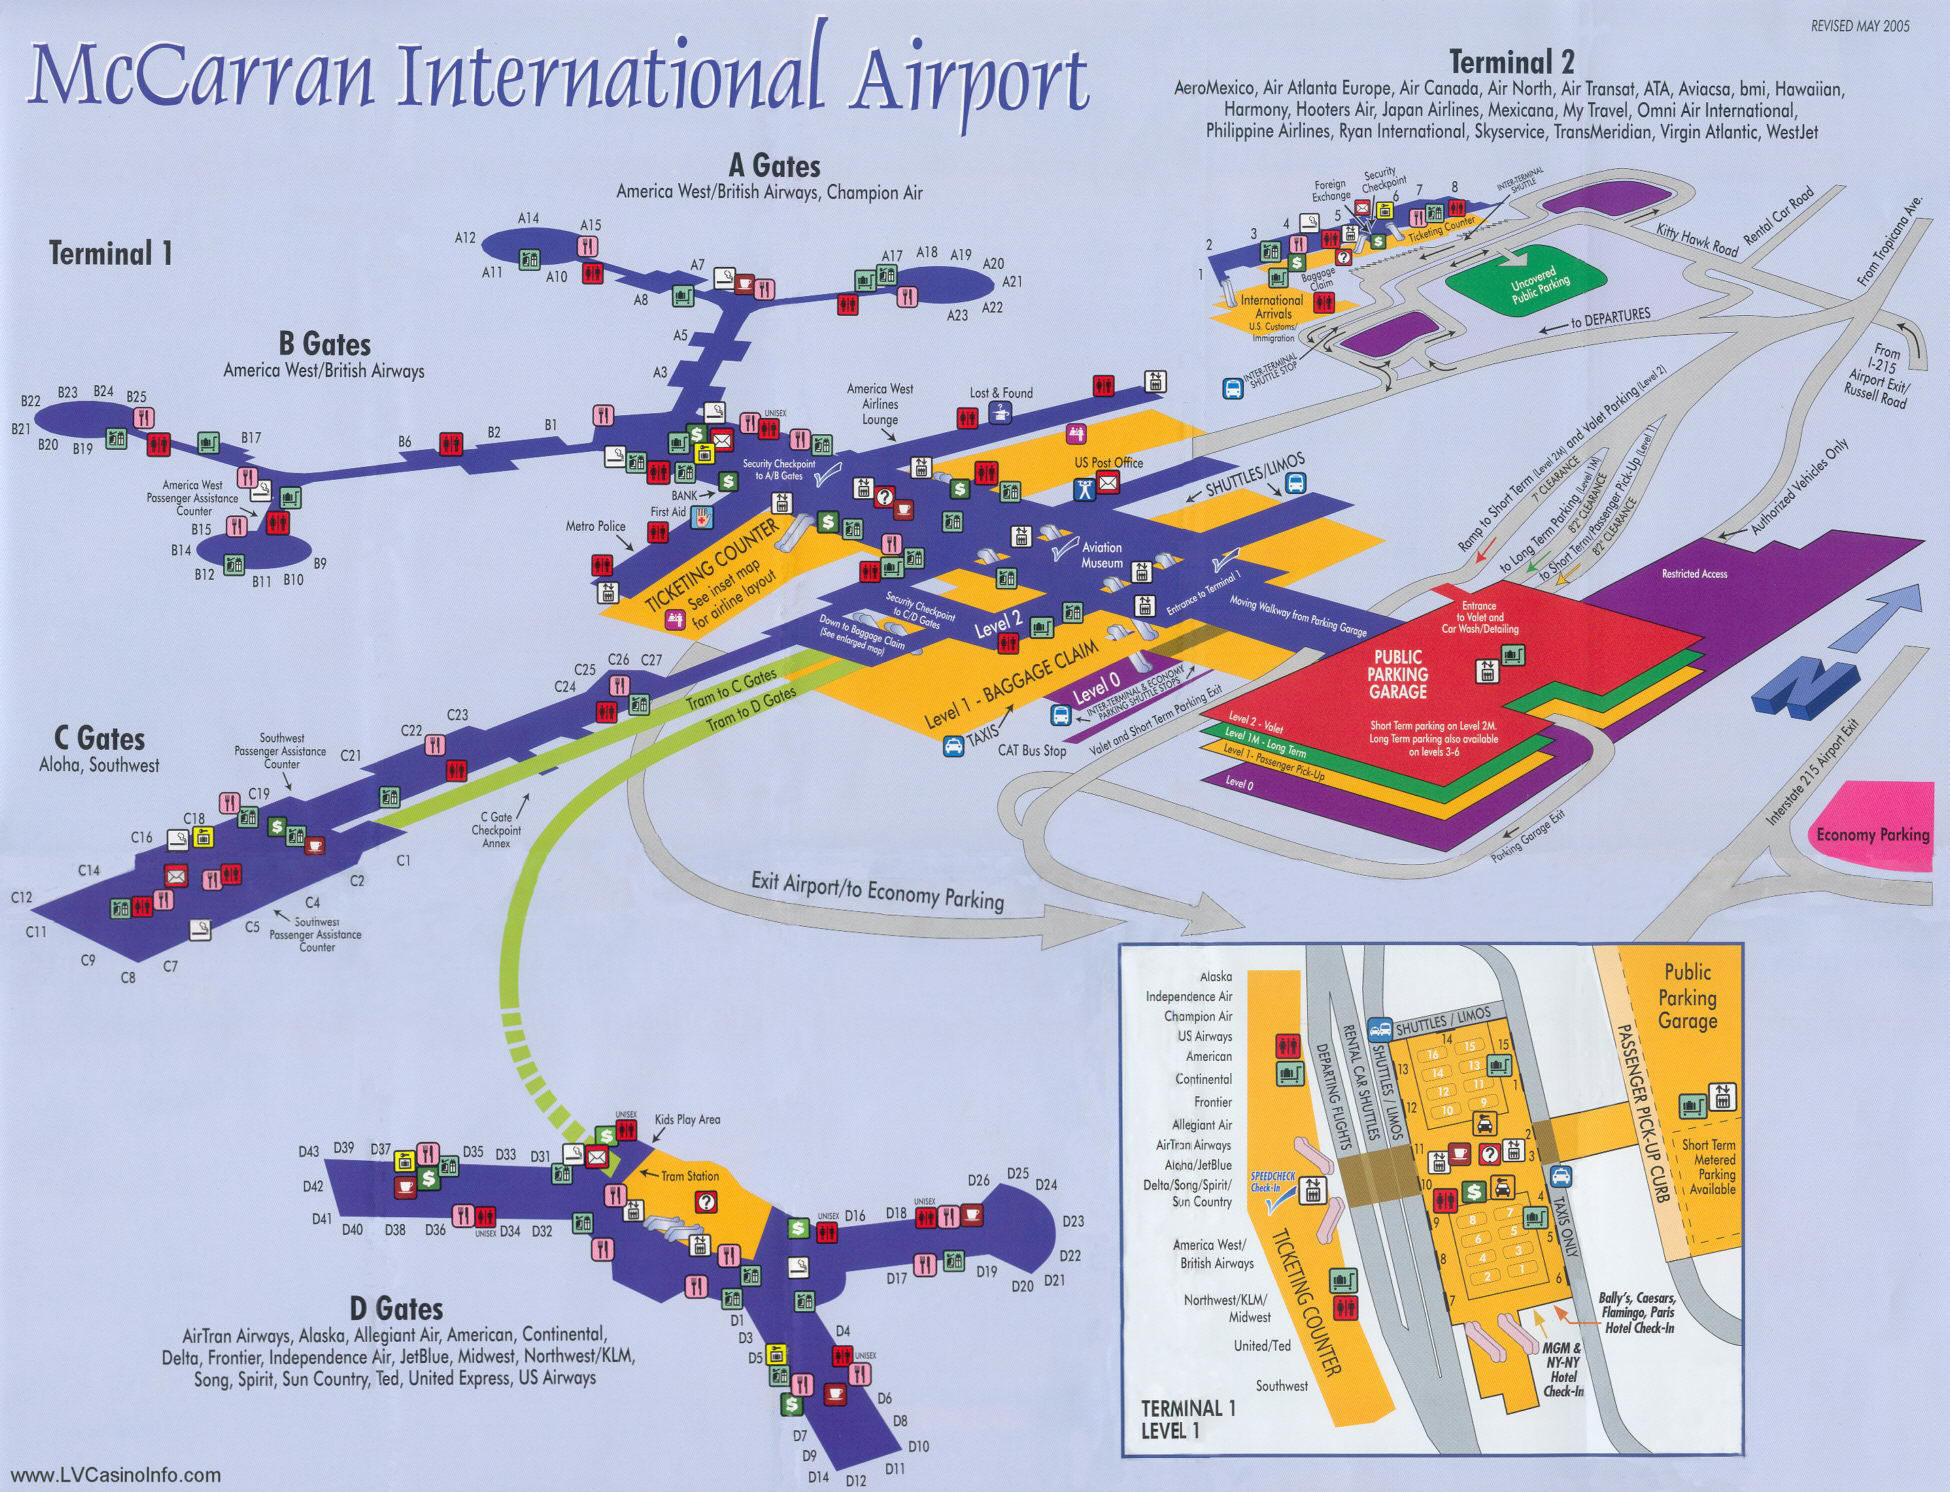 Las Vegas Casino Property Maps and Floor Plans | VegasCasinoInfo.com